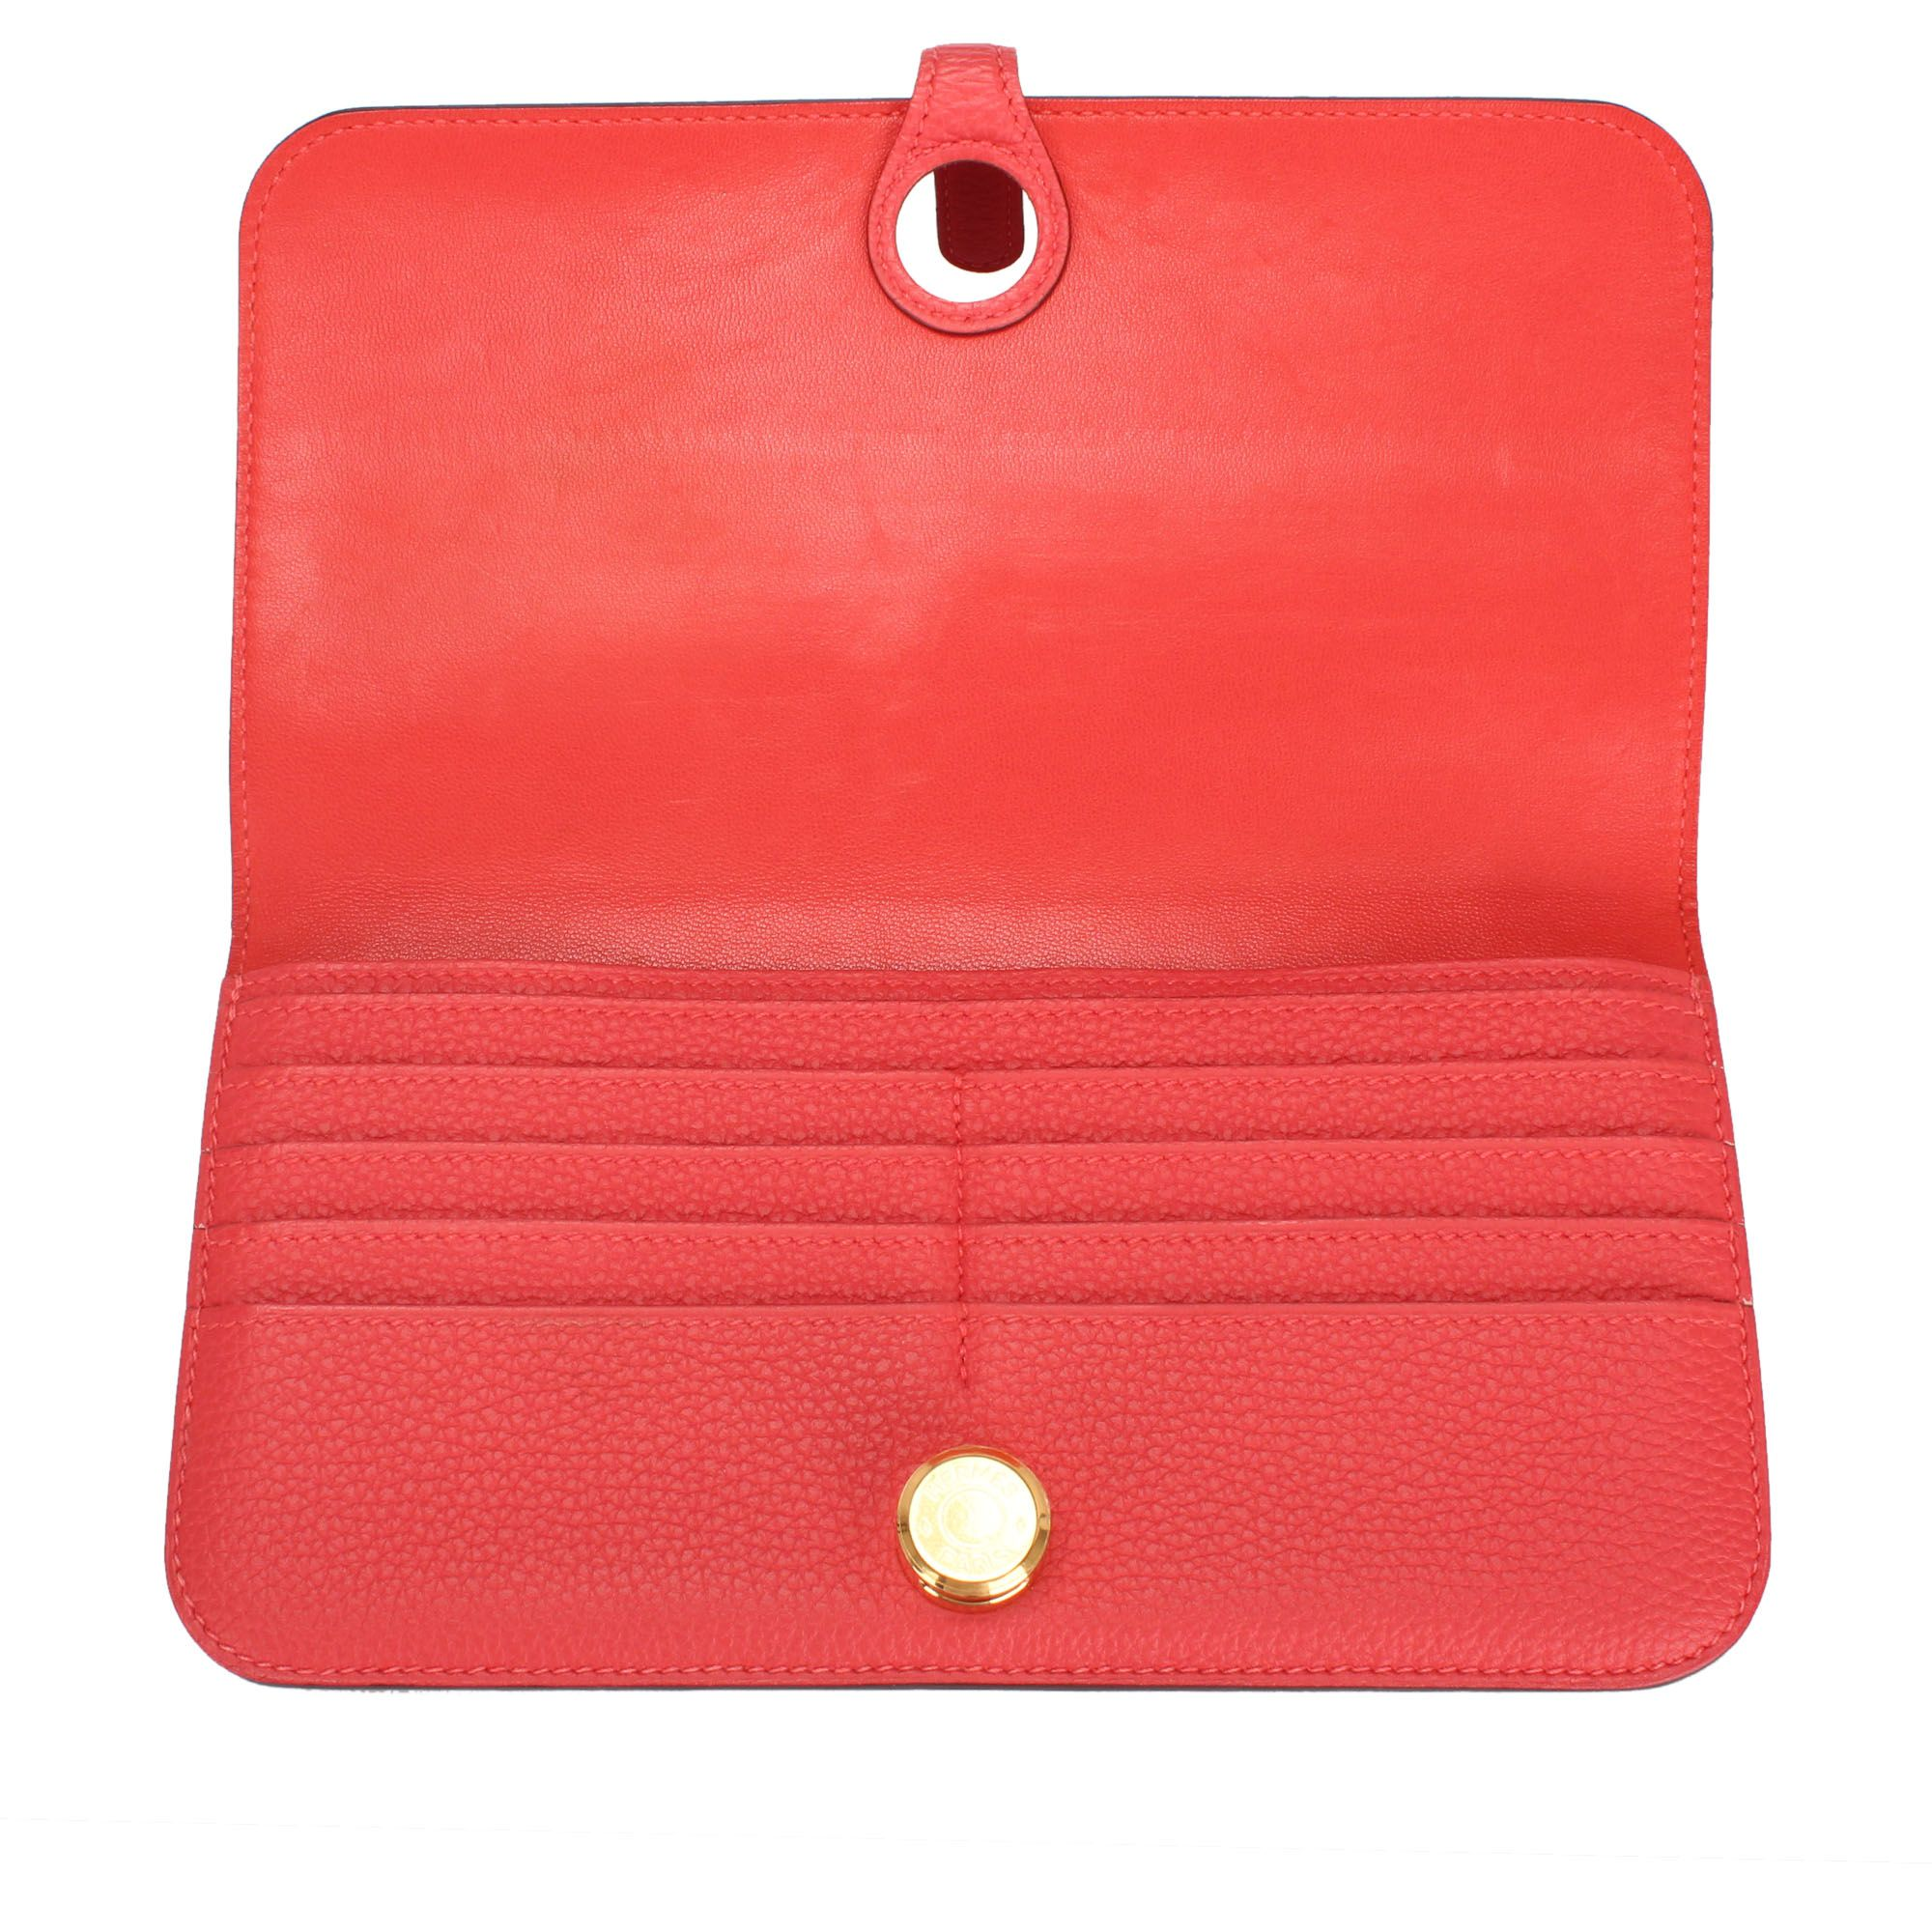 Vintage Hermes Clemence Dogon Long Wallet Red